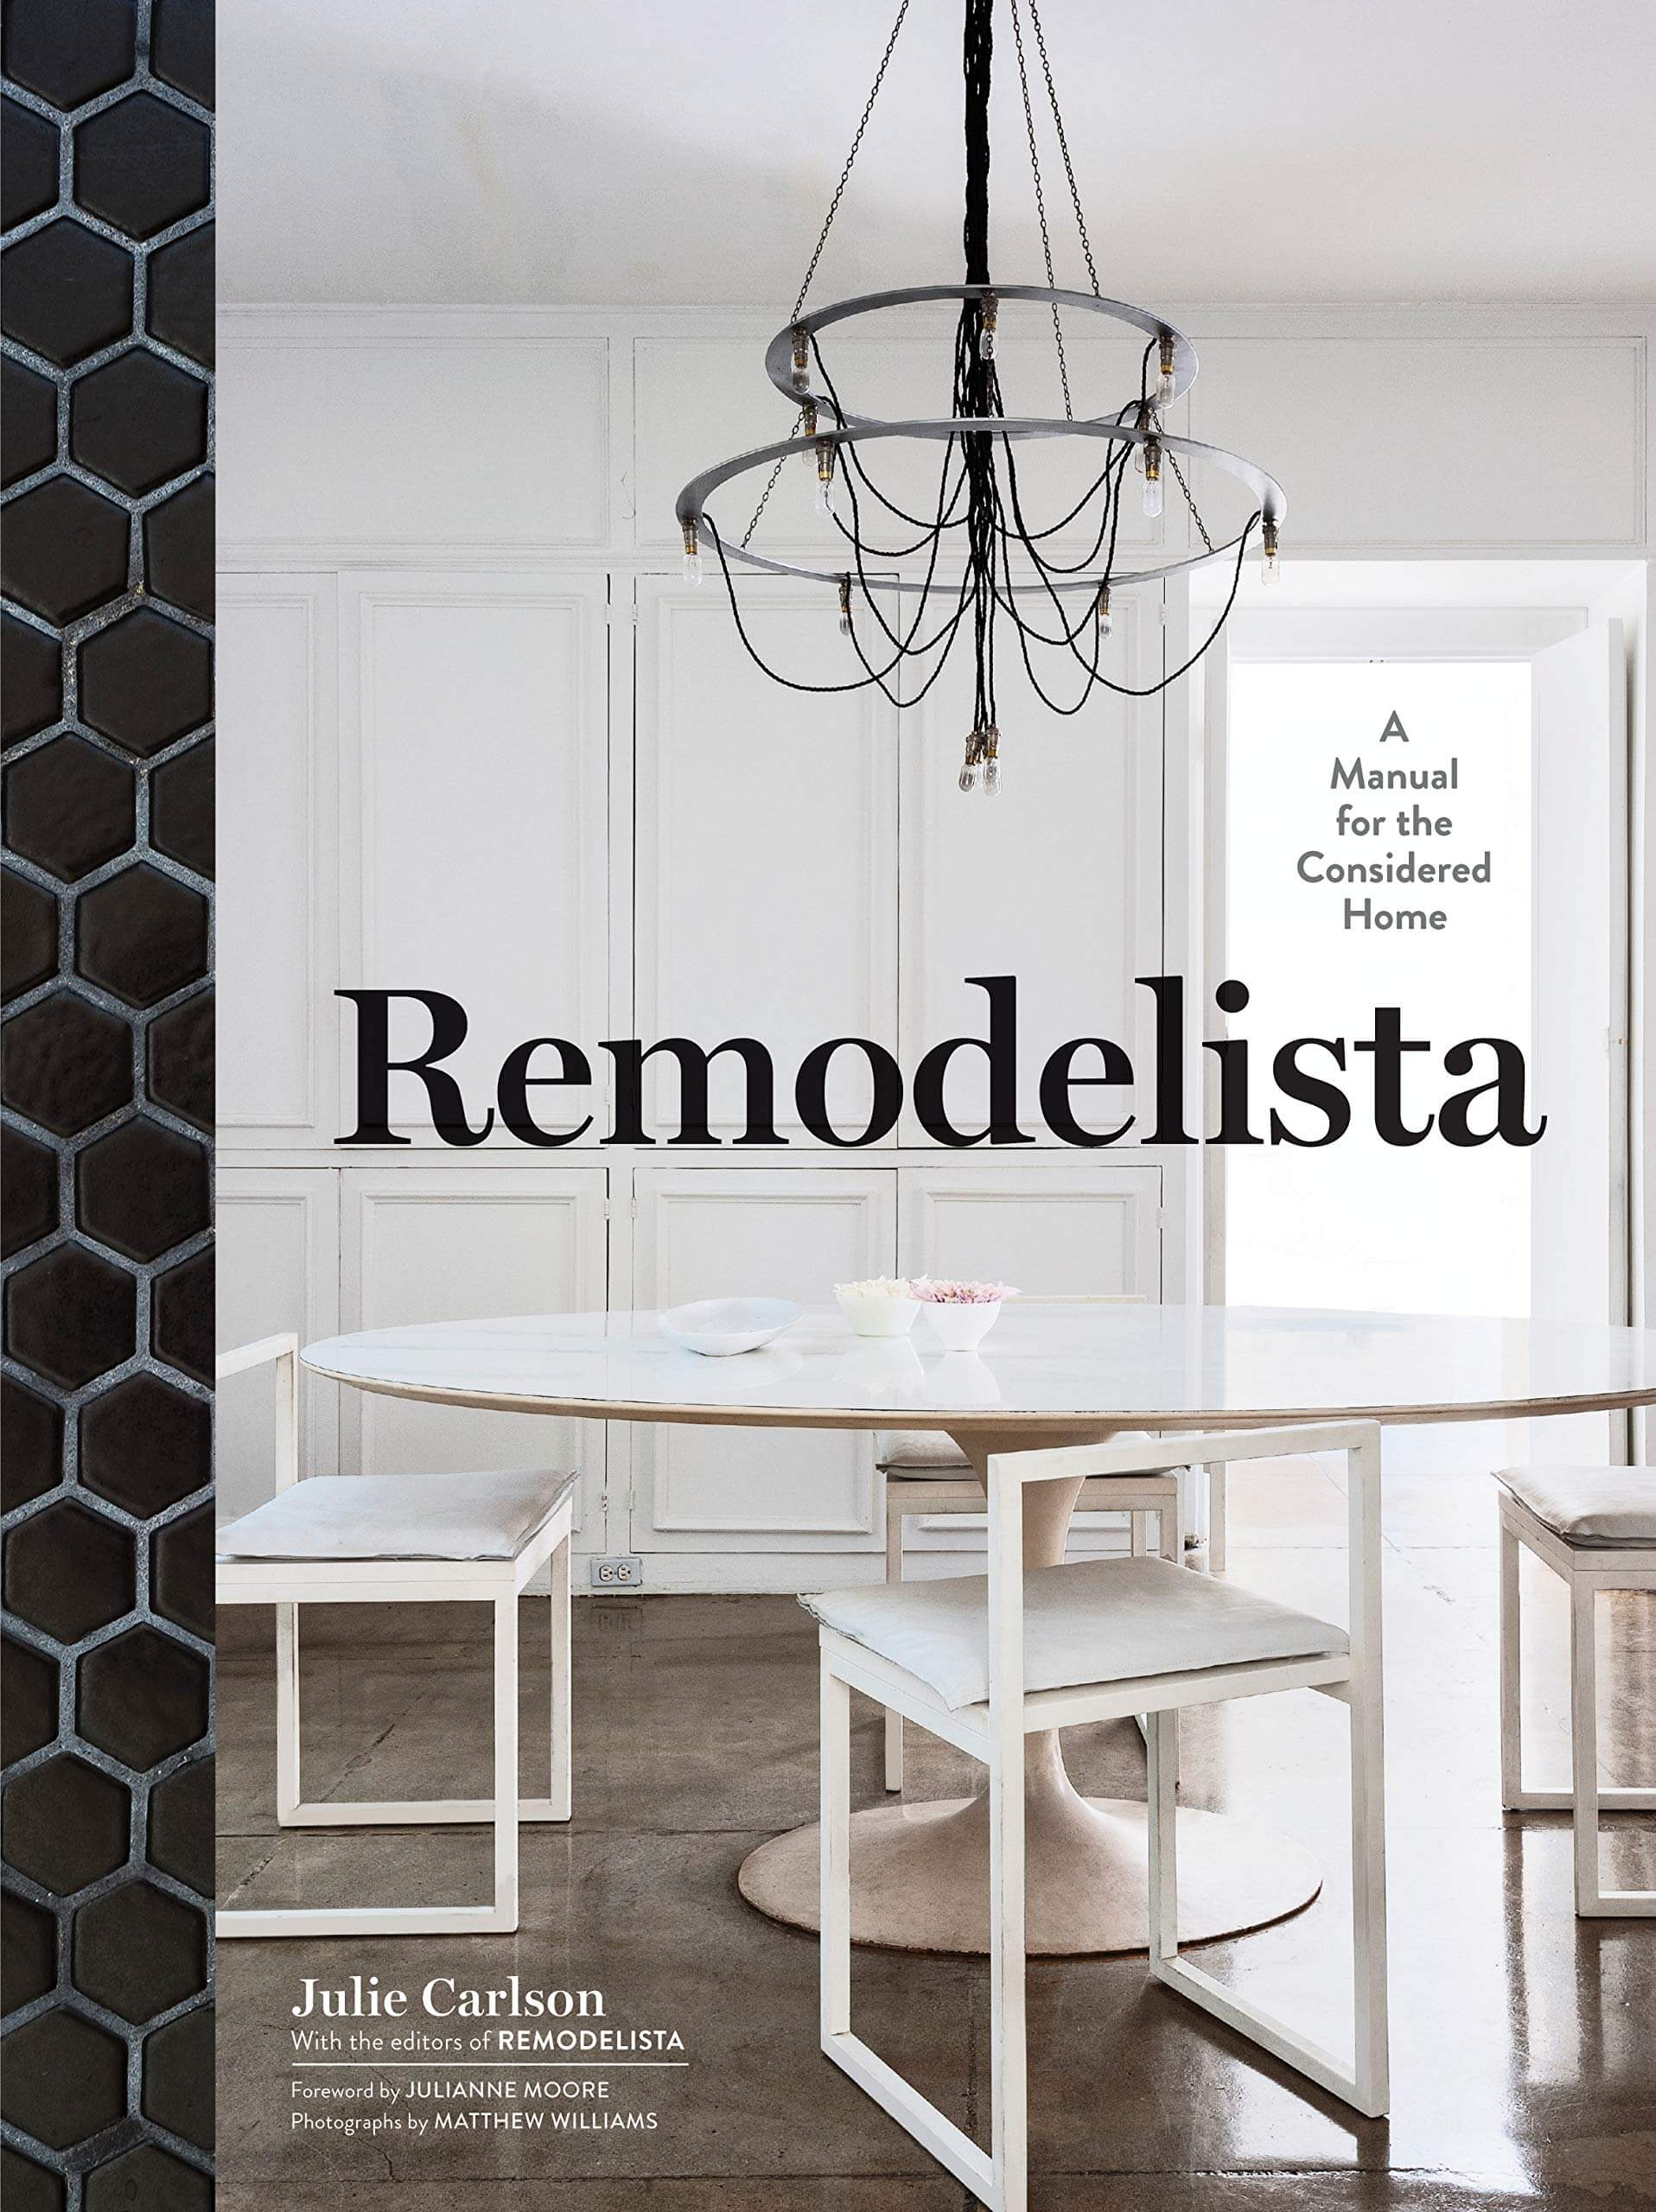 Remodelista book cover image